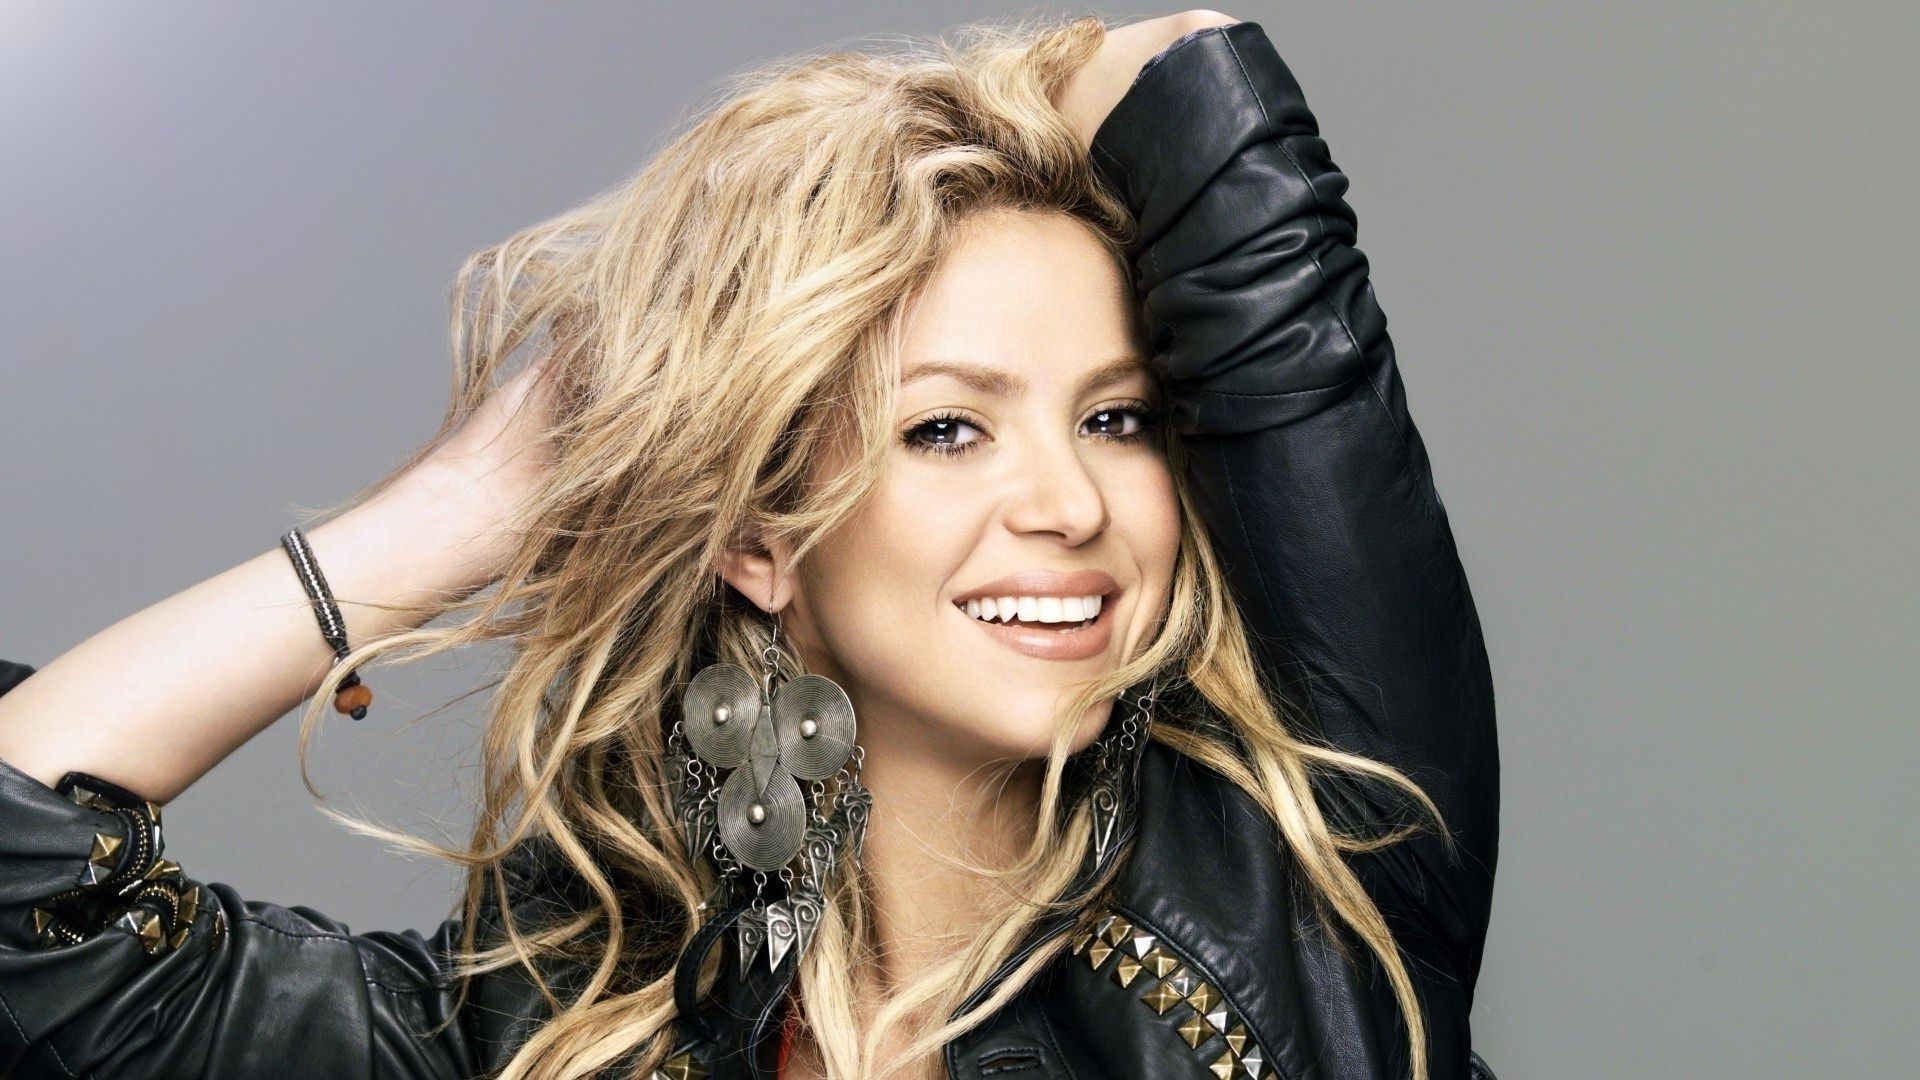 Free Download Pure 100 Shakira Hd Wallpapers Latest Photoshoots Beautiful Images And More For Pc Laptops Iphone And More Hair Styles Shakira Hair Shakira